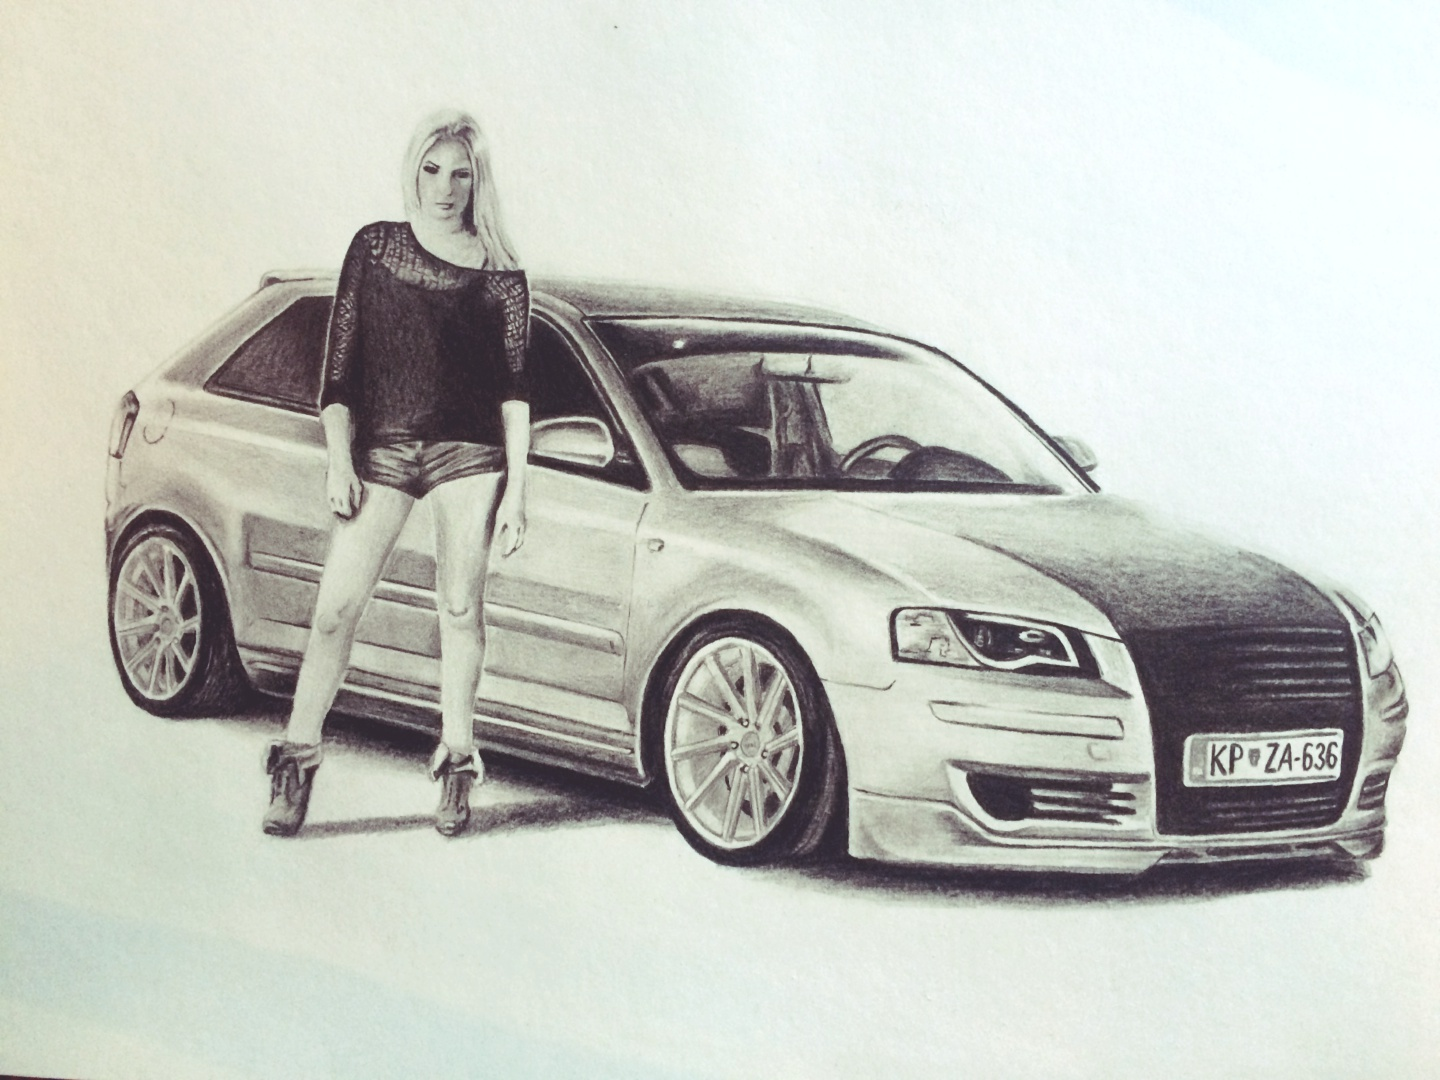 1440x1080 Audi A3 Drawing. Cars. Audi A3 And Drawings